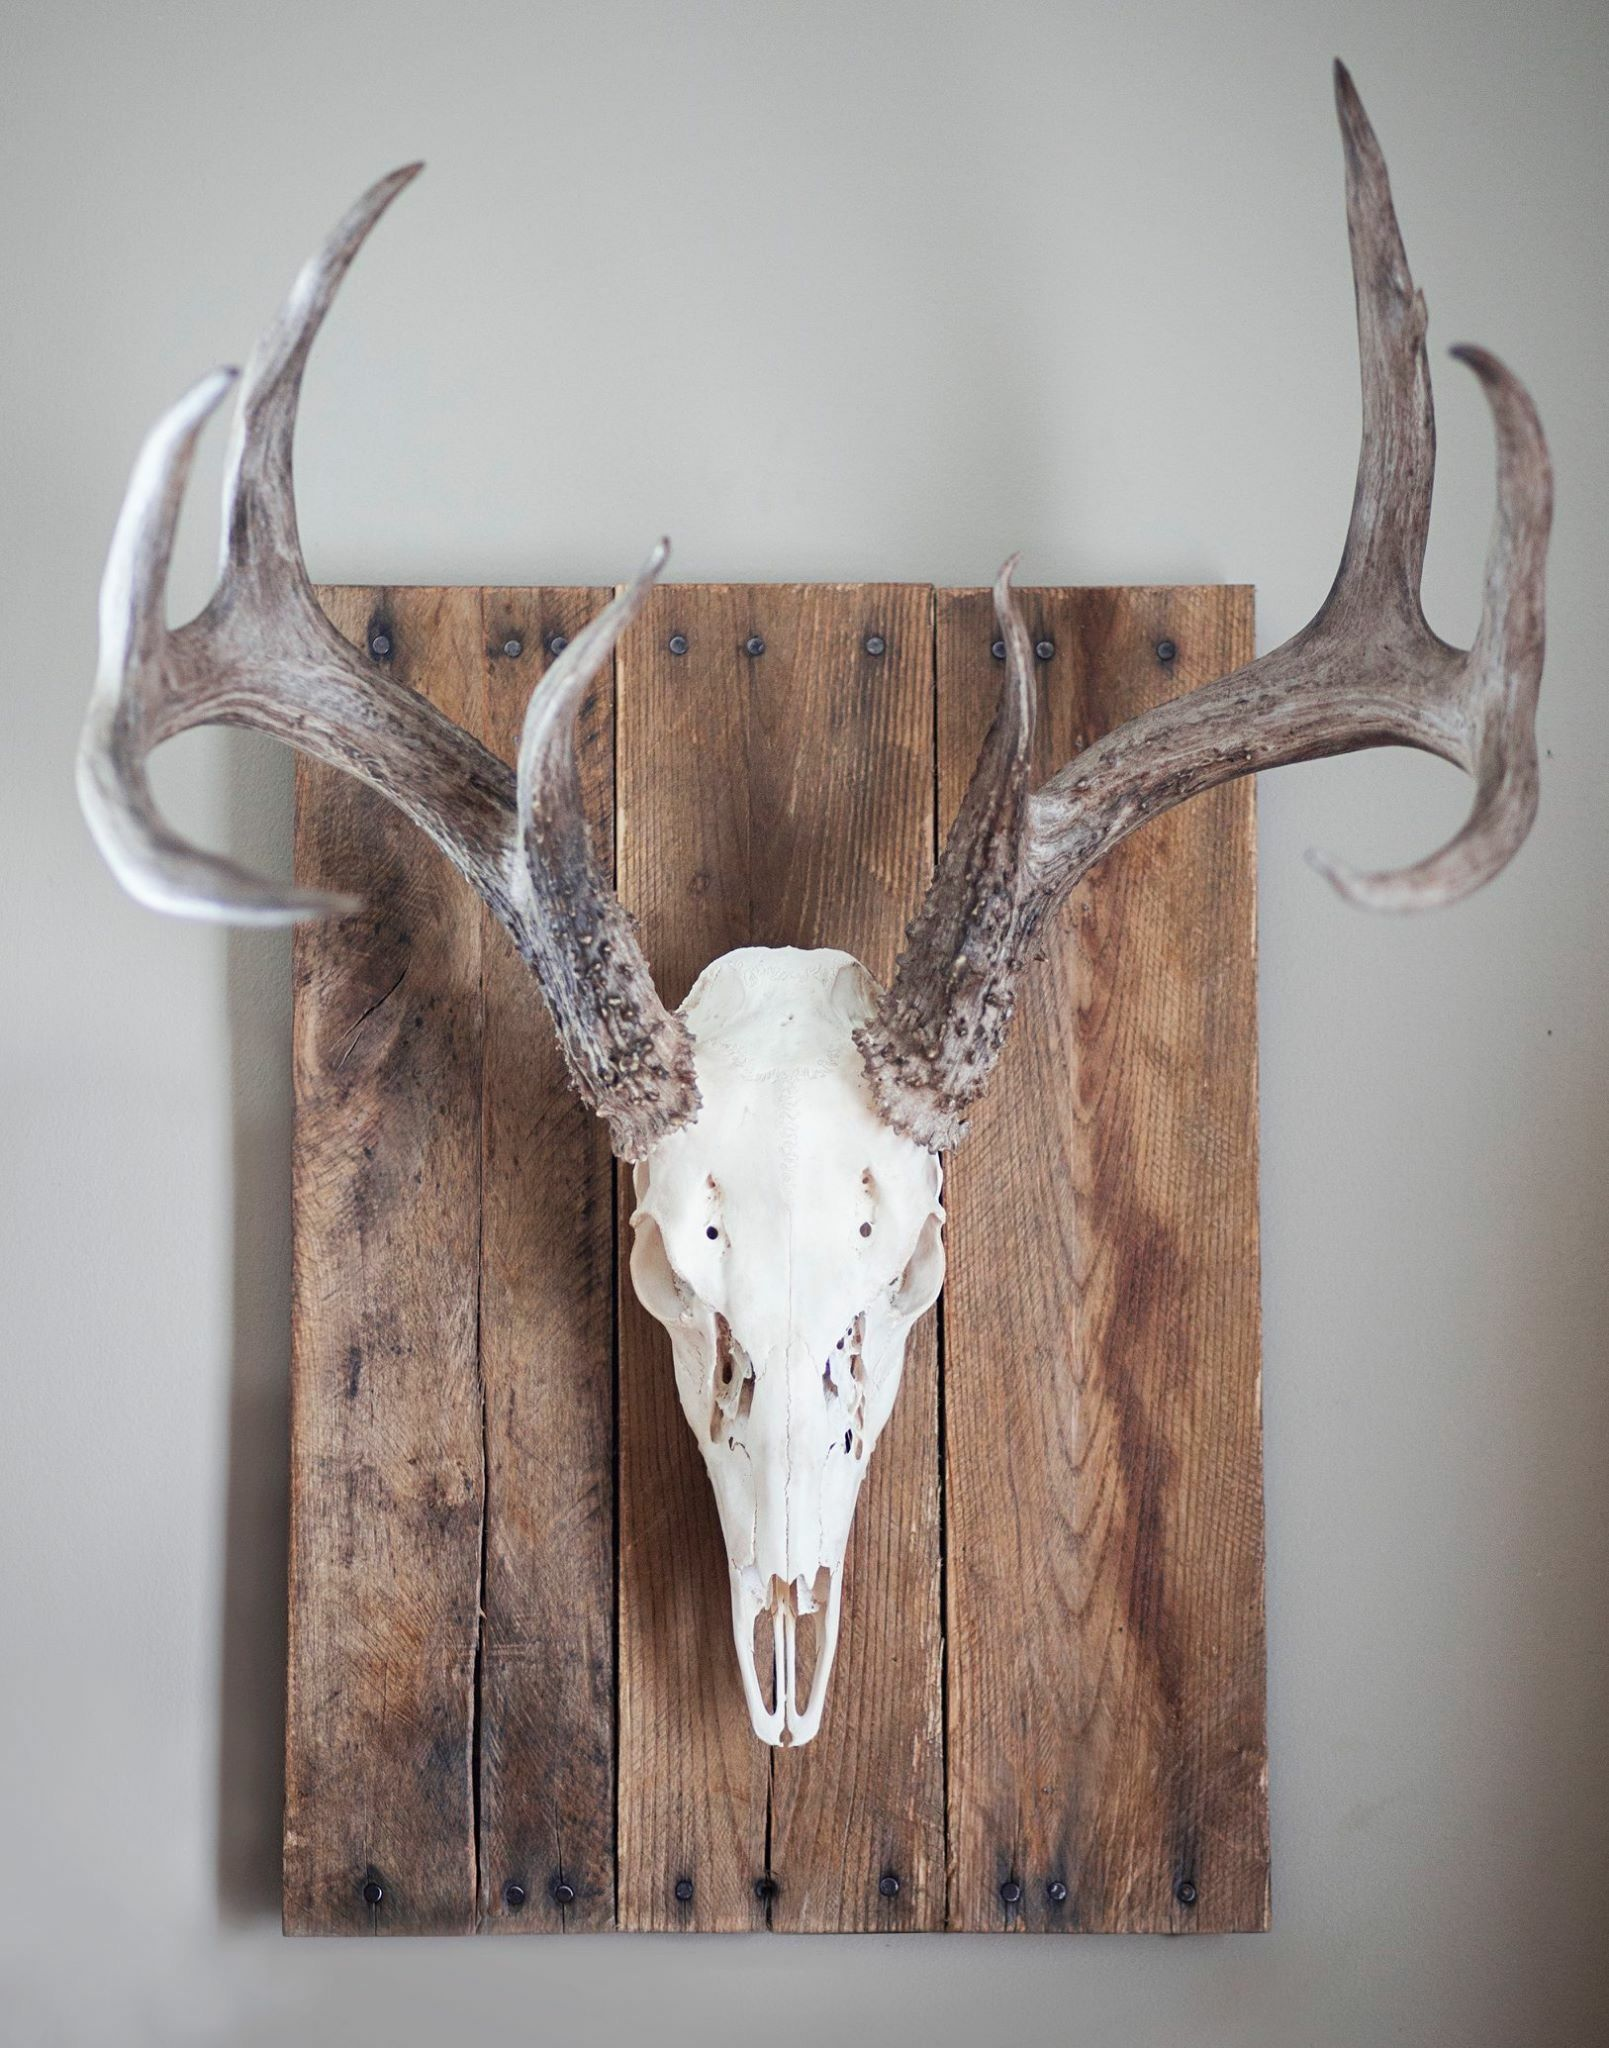 Deer skull mount ideas - Whitened Skull With Weathered Wood Wall Plaque This Wall Plaque Can Be Added To Any